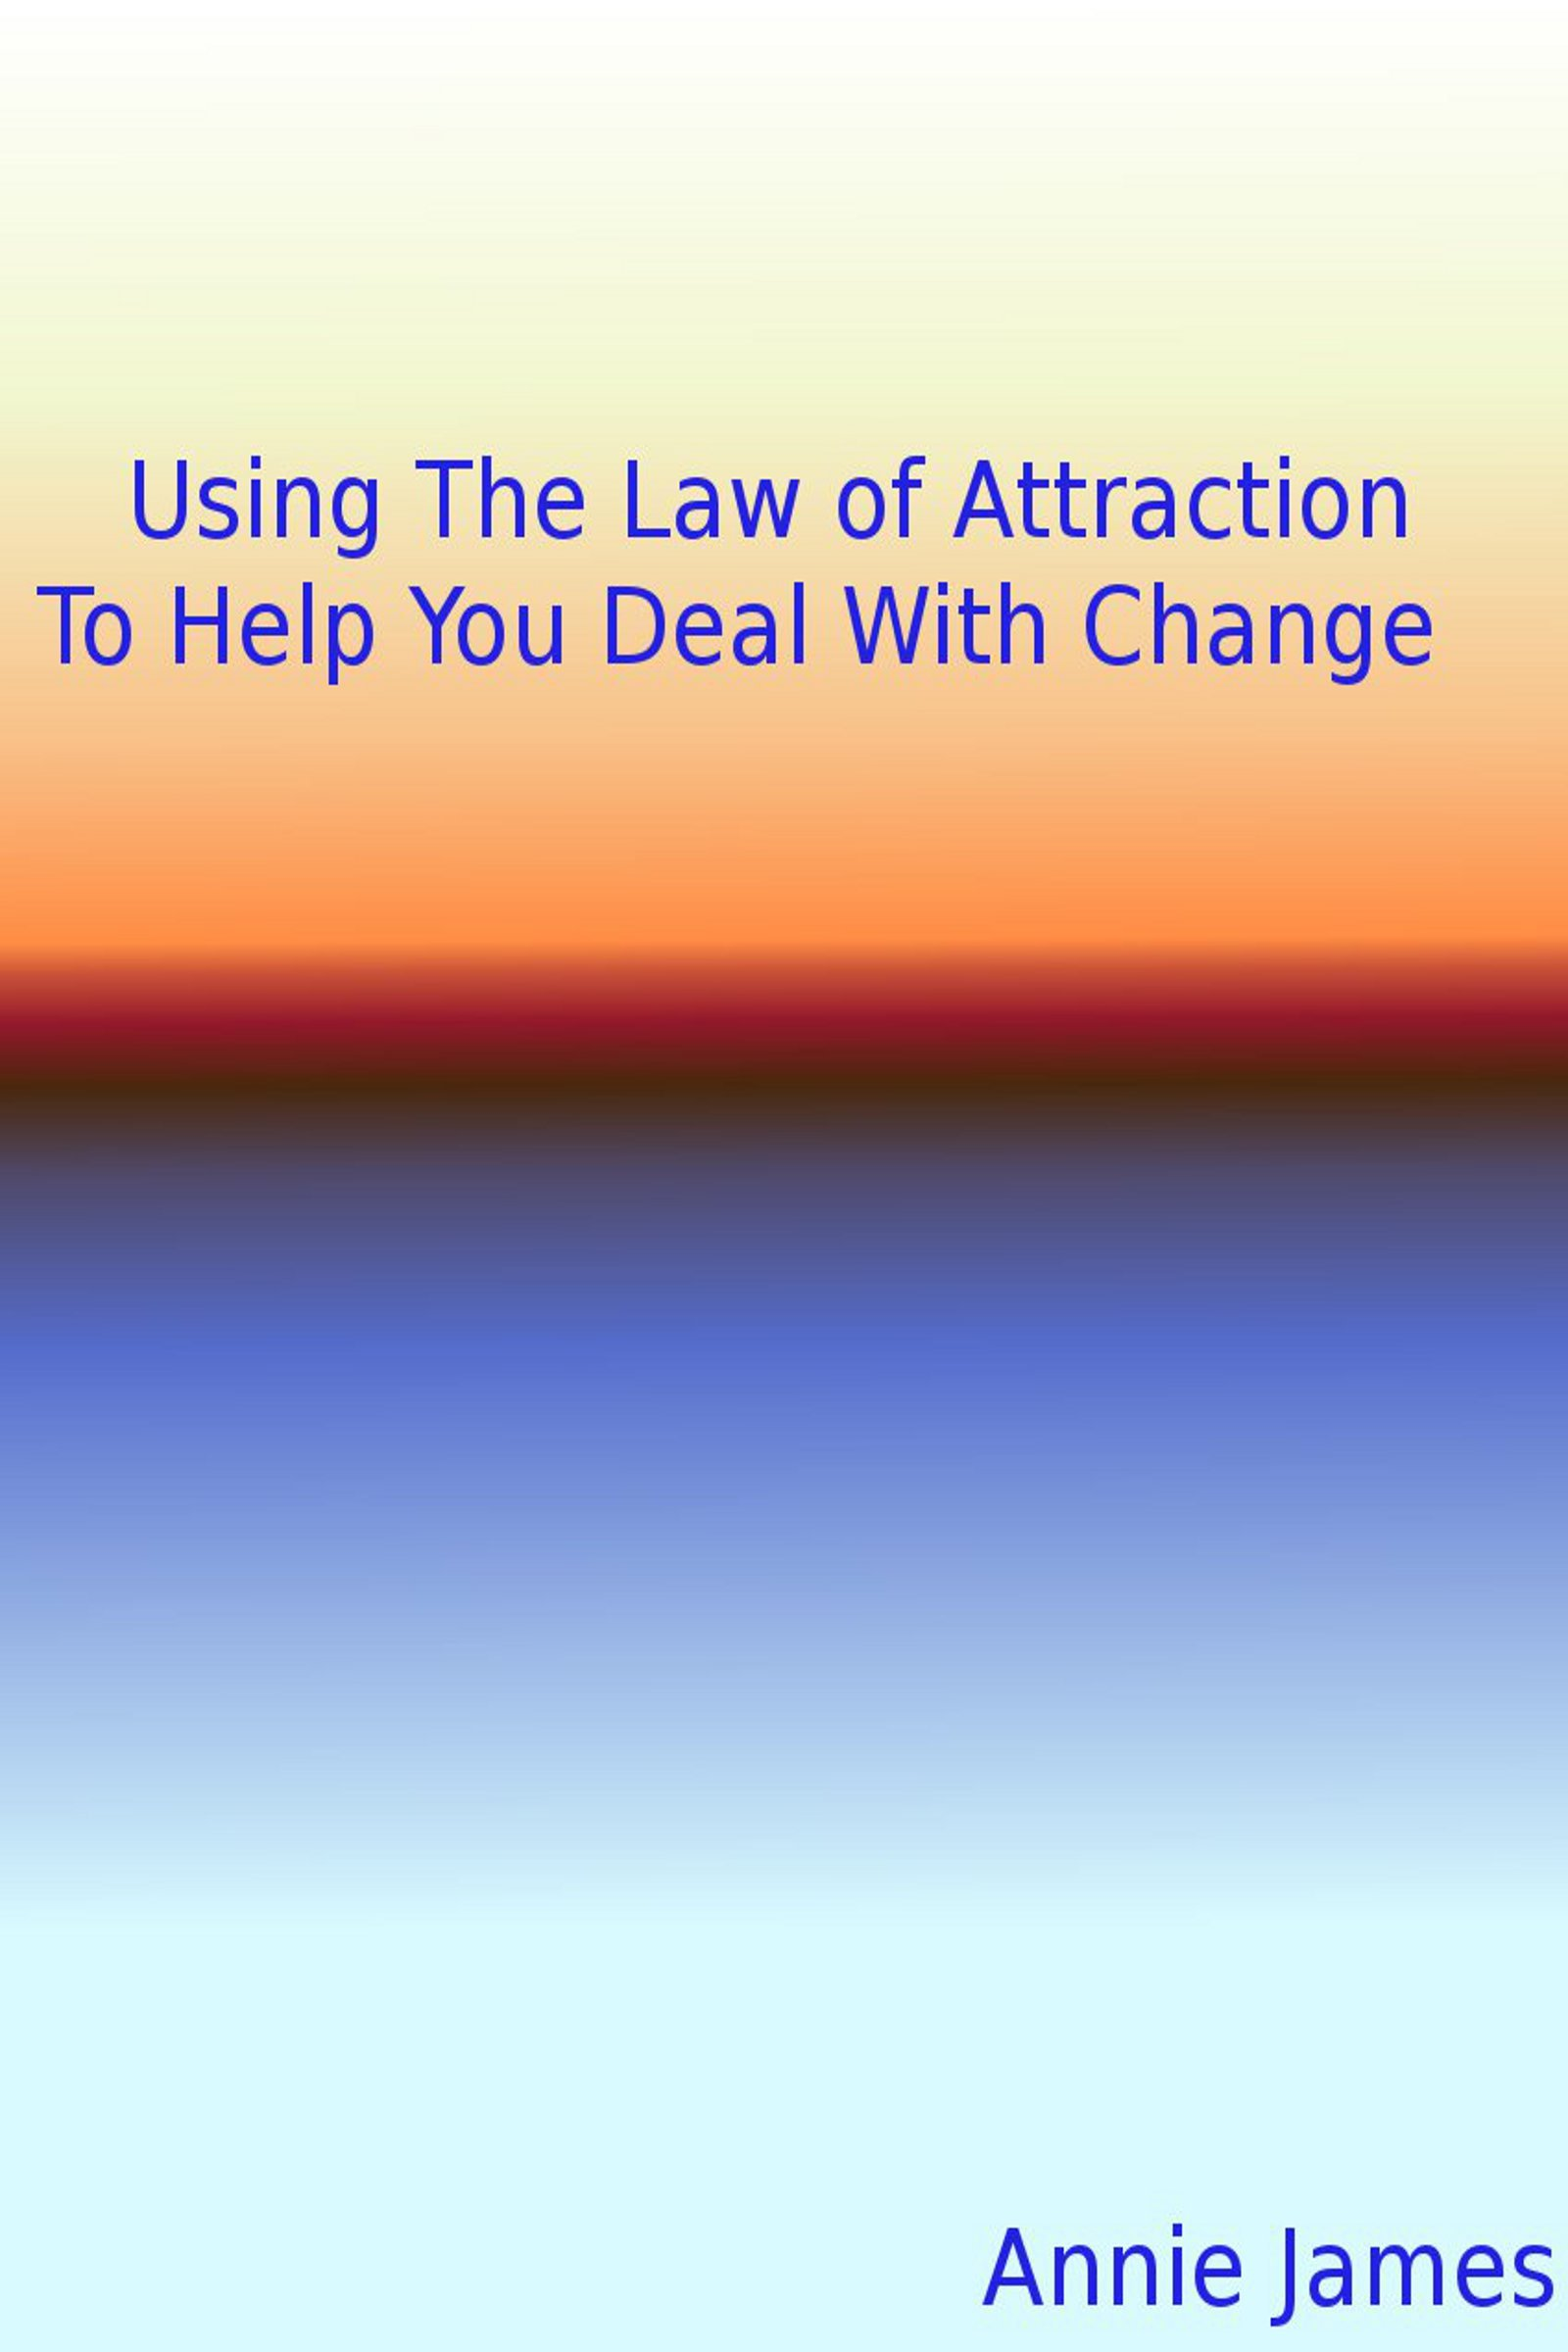 Using The Law of Attraction To Help You Deal With Change